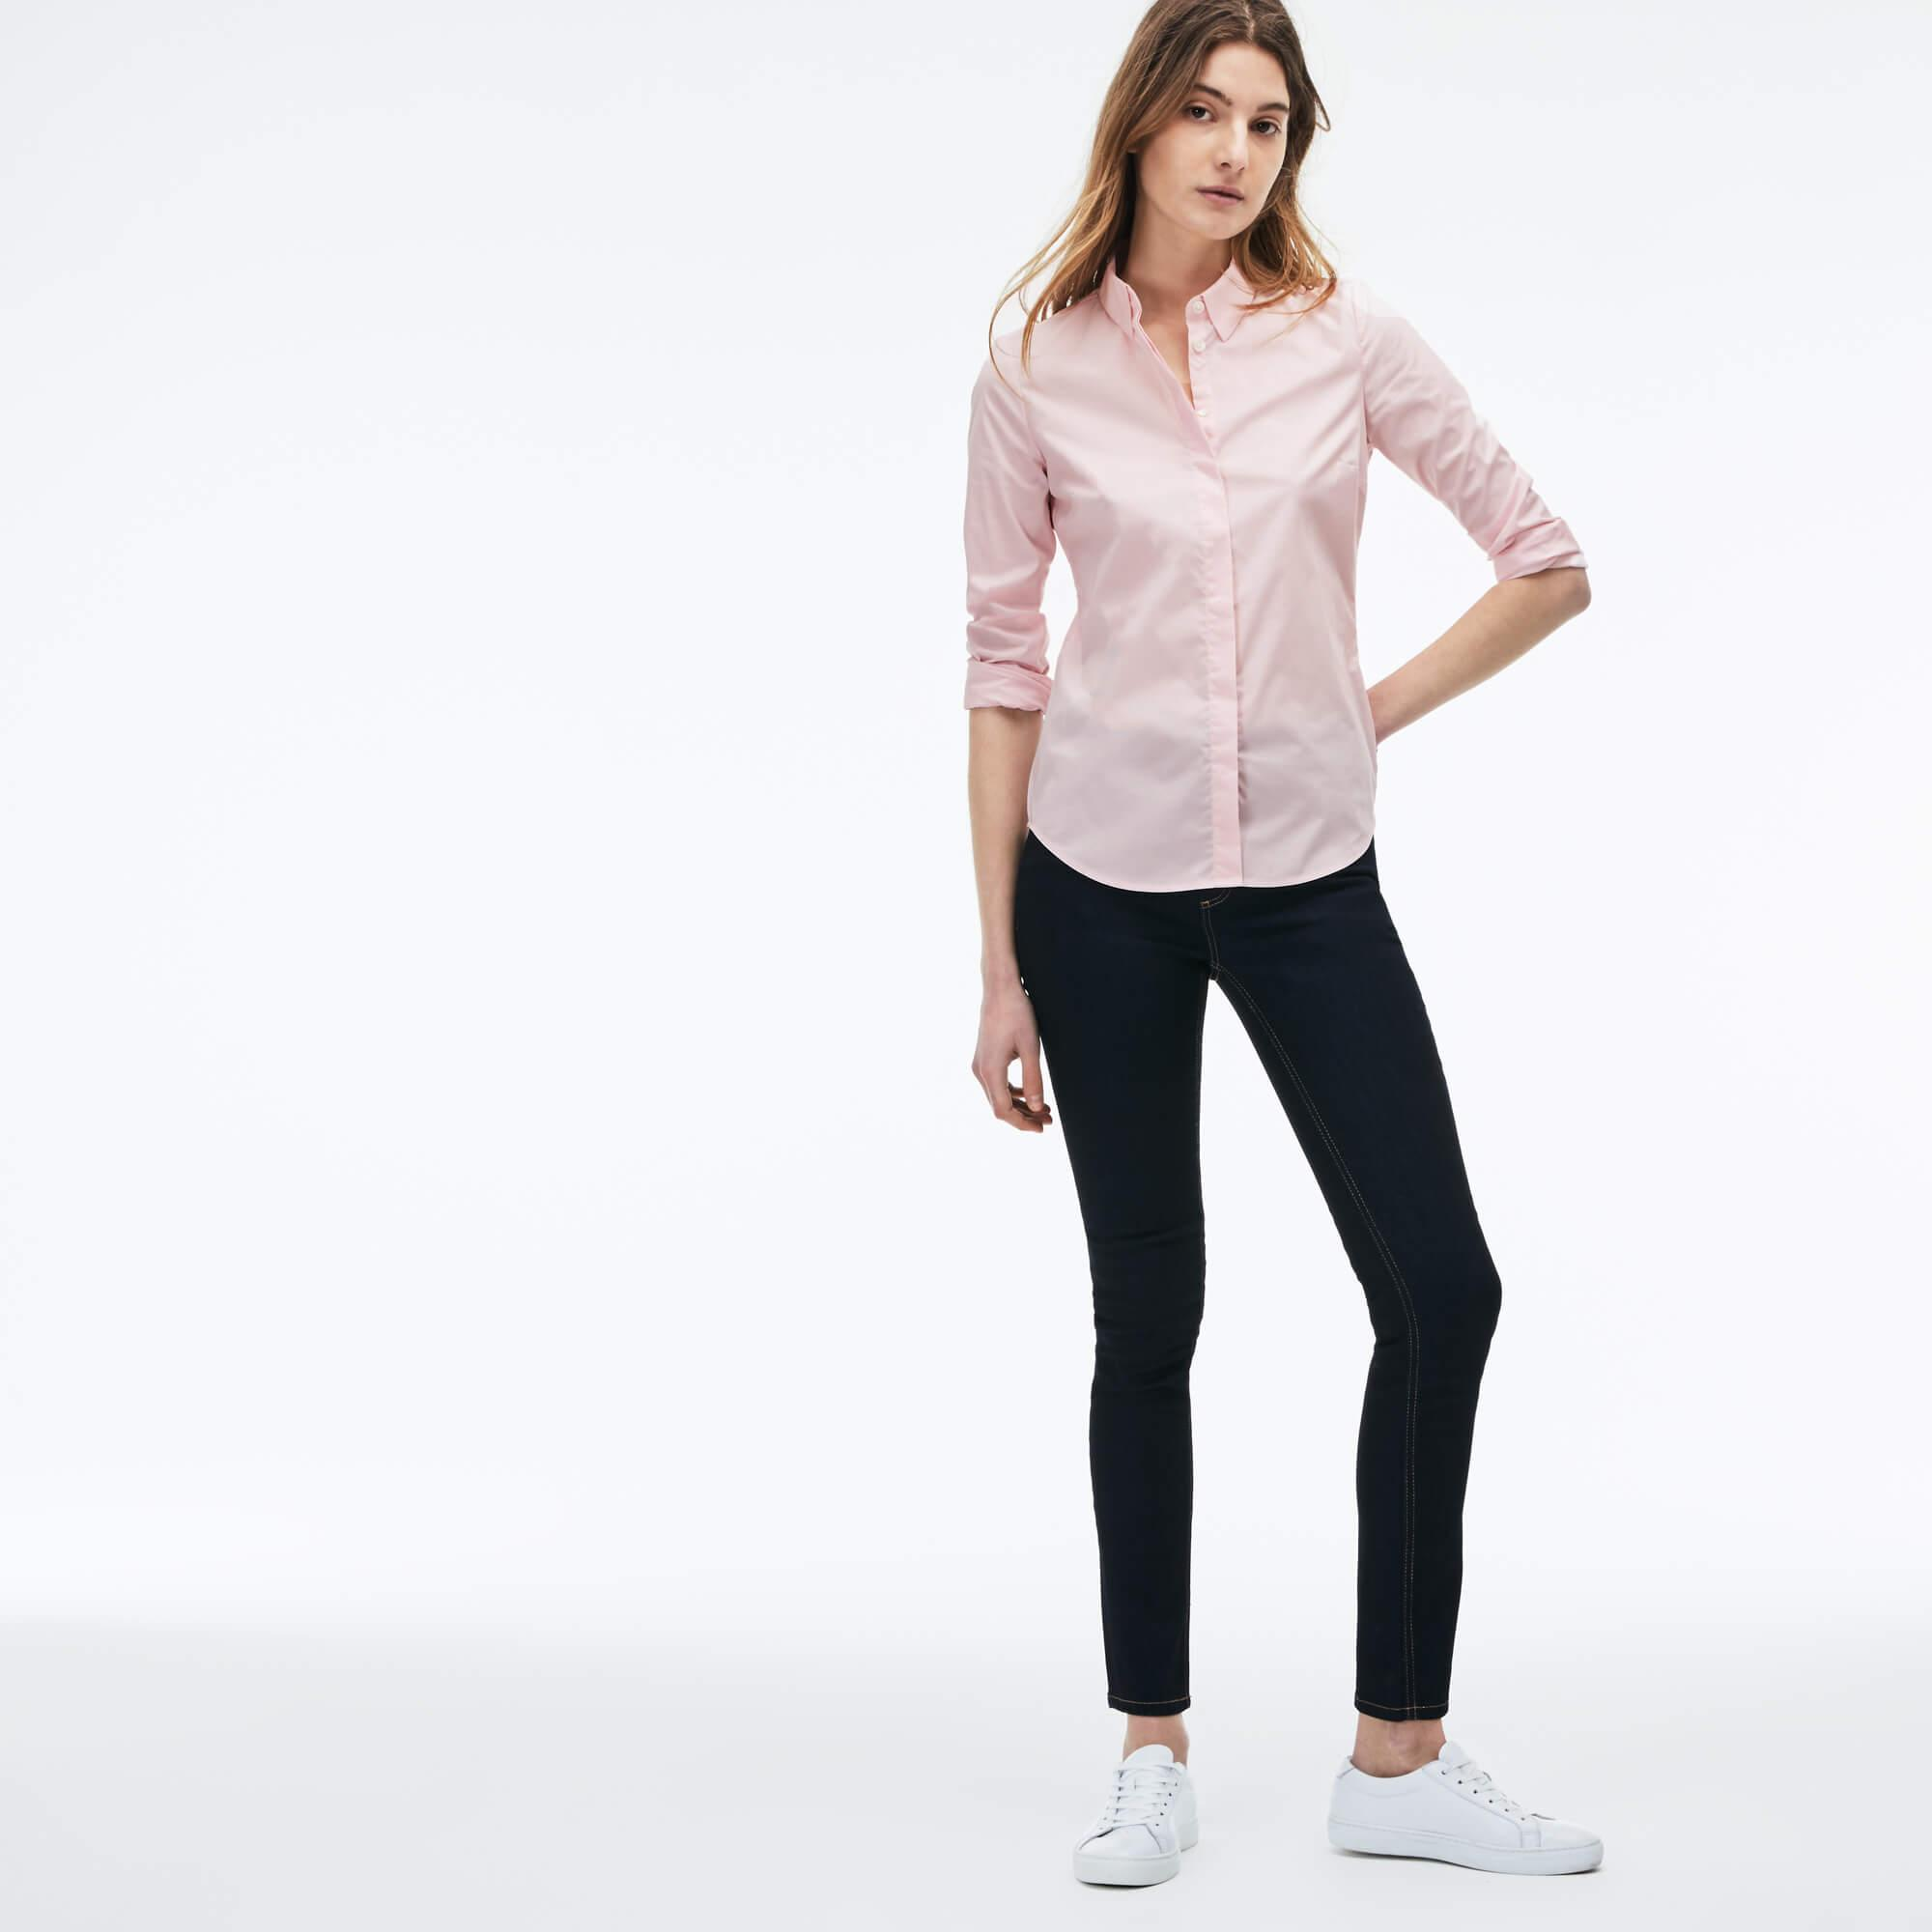 Lacoste Women's Long Sleeve Shirt